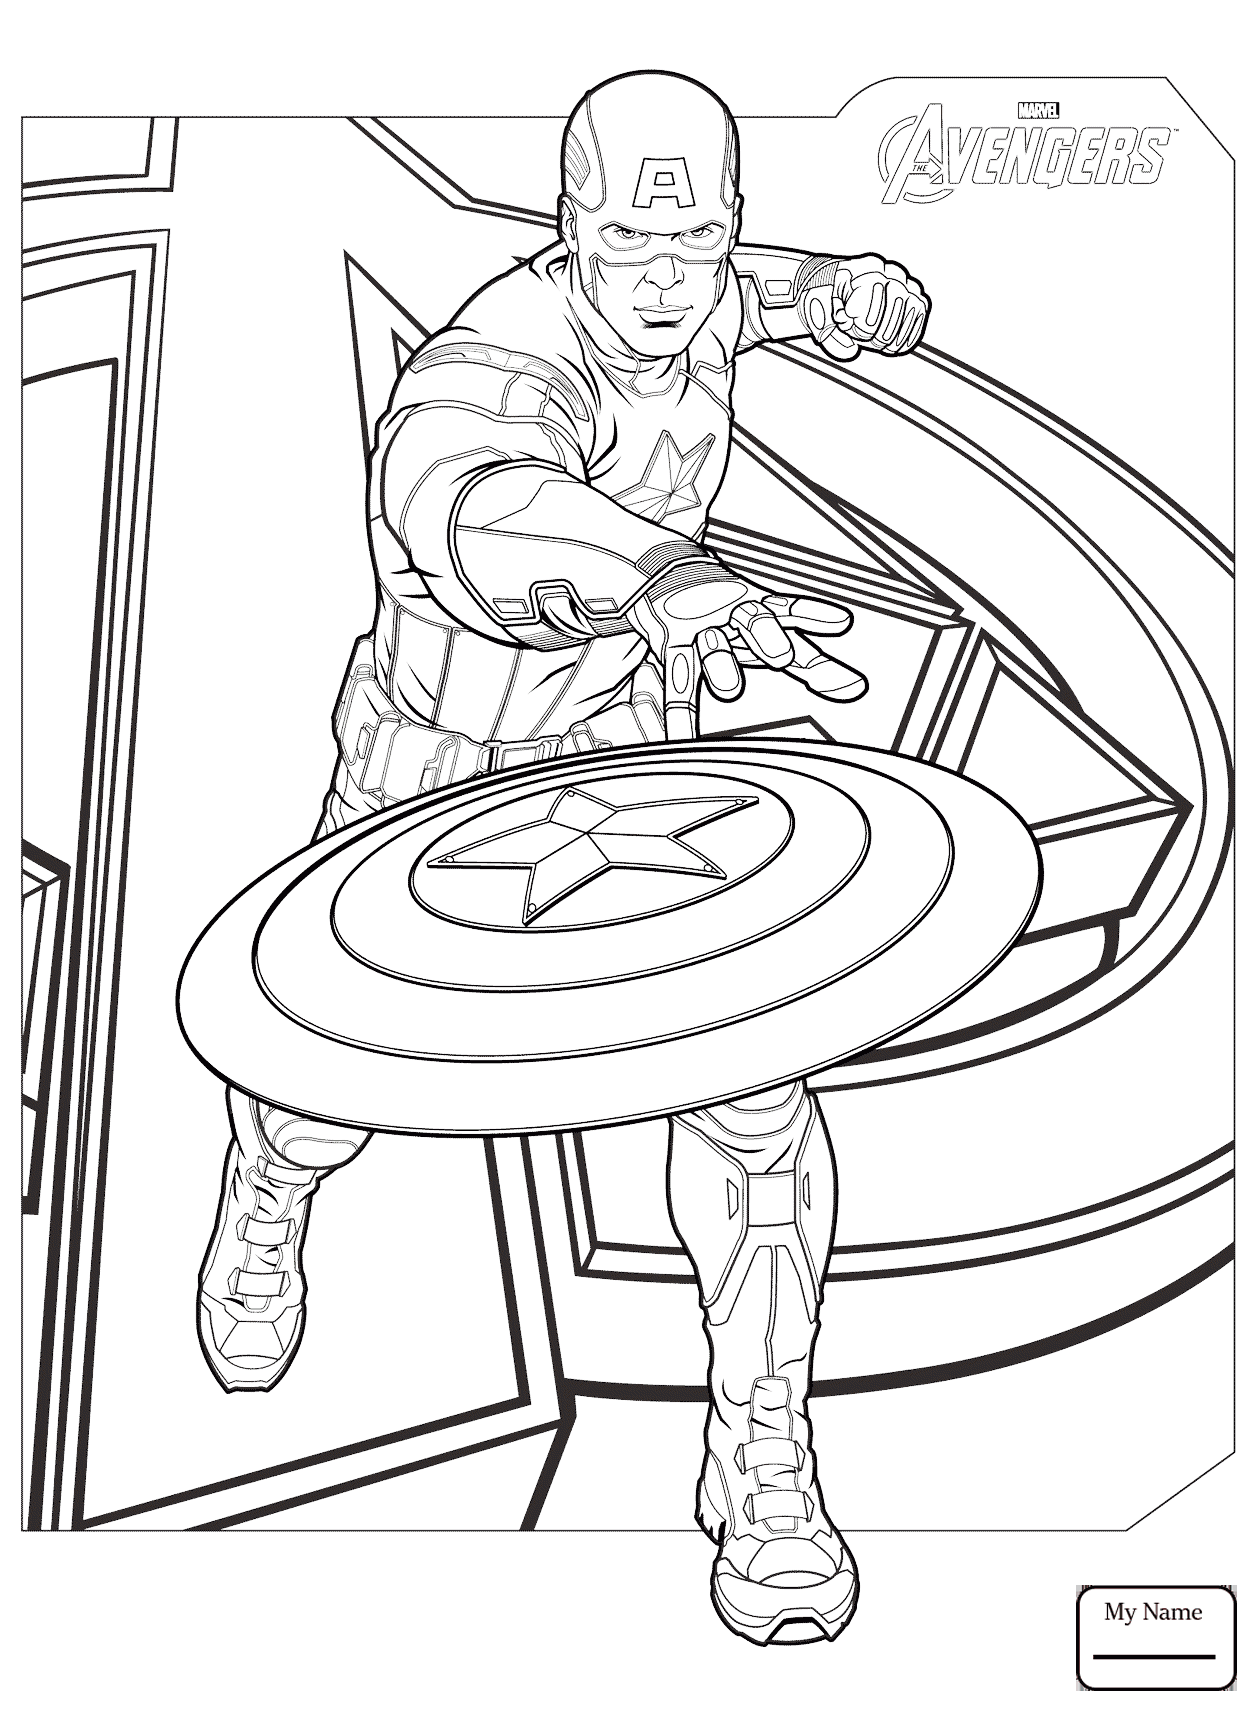 1257x1716 Cartoons Avengers Captain America Marvels The Avengers Coloring